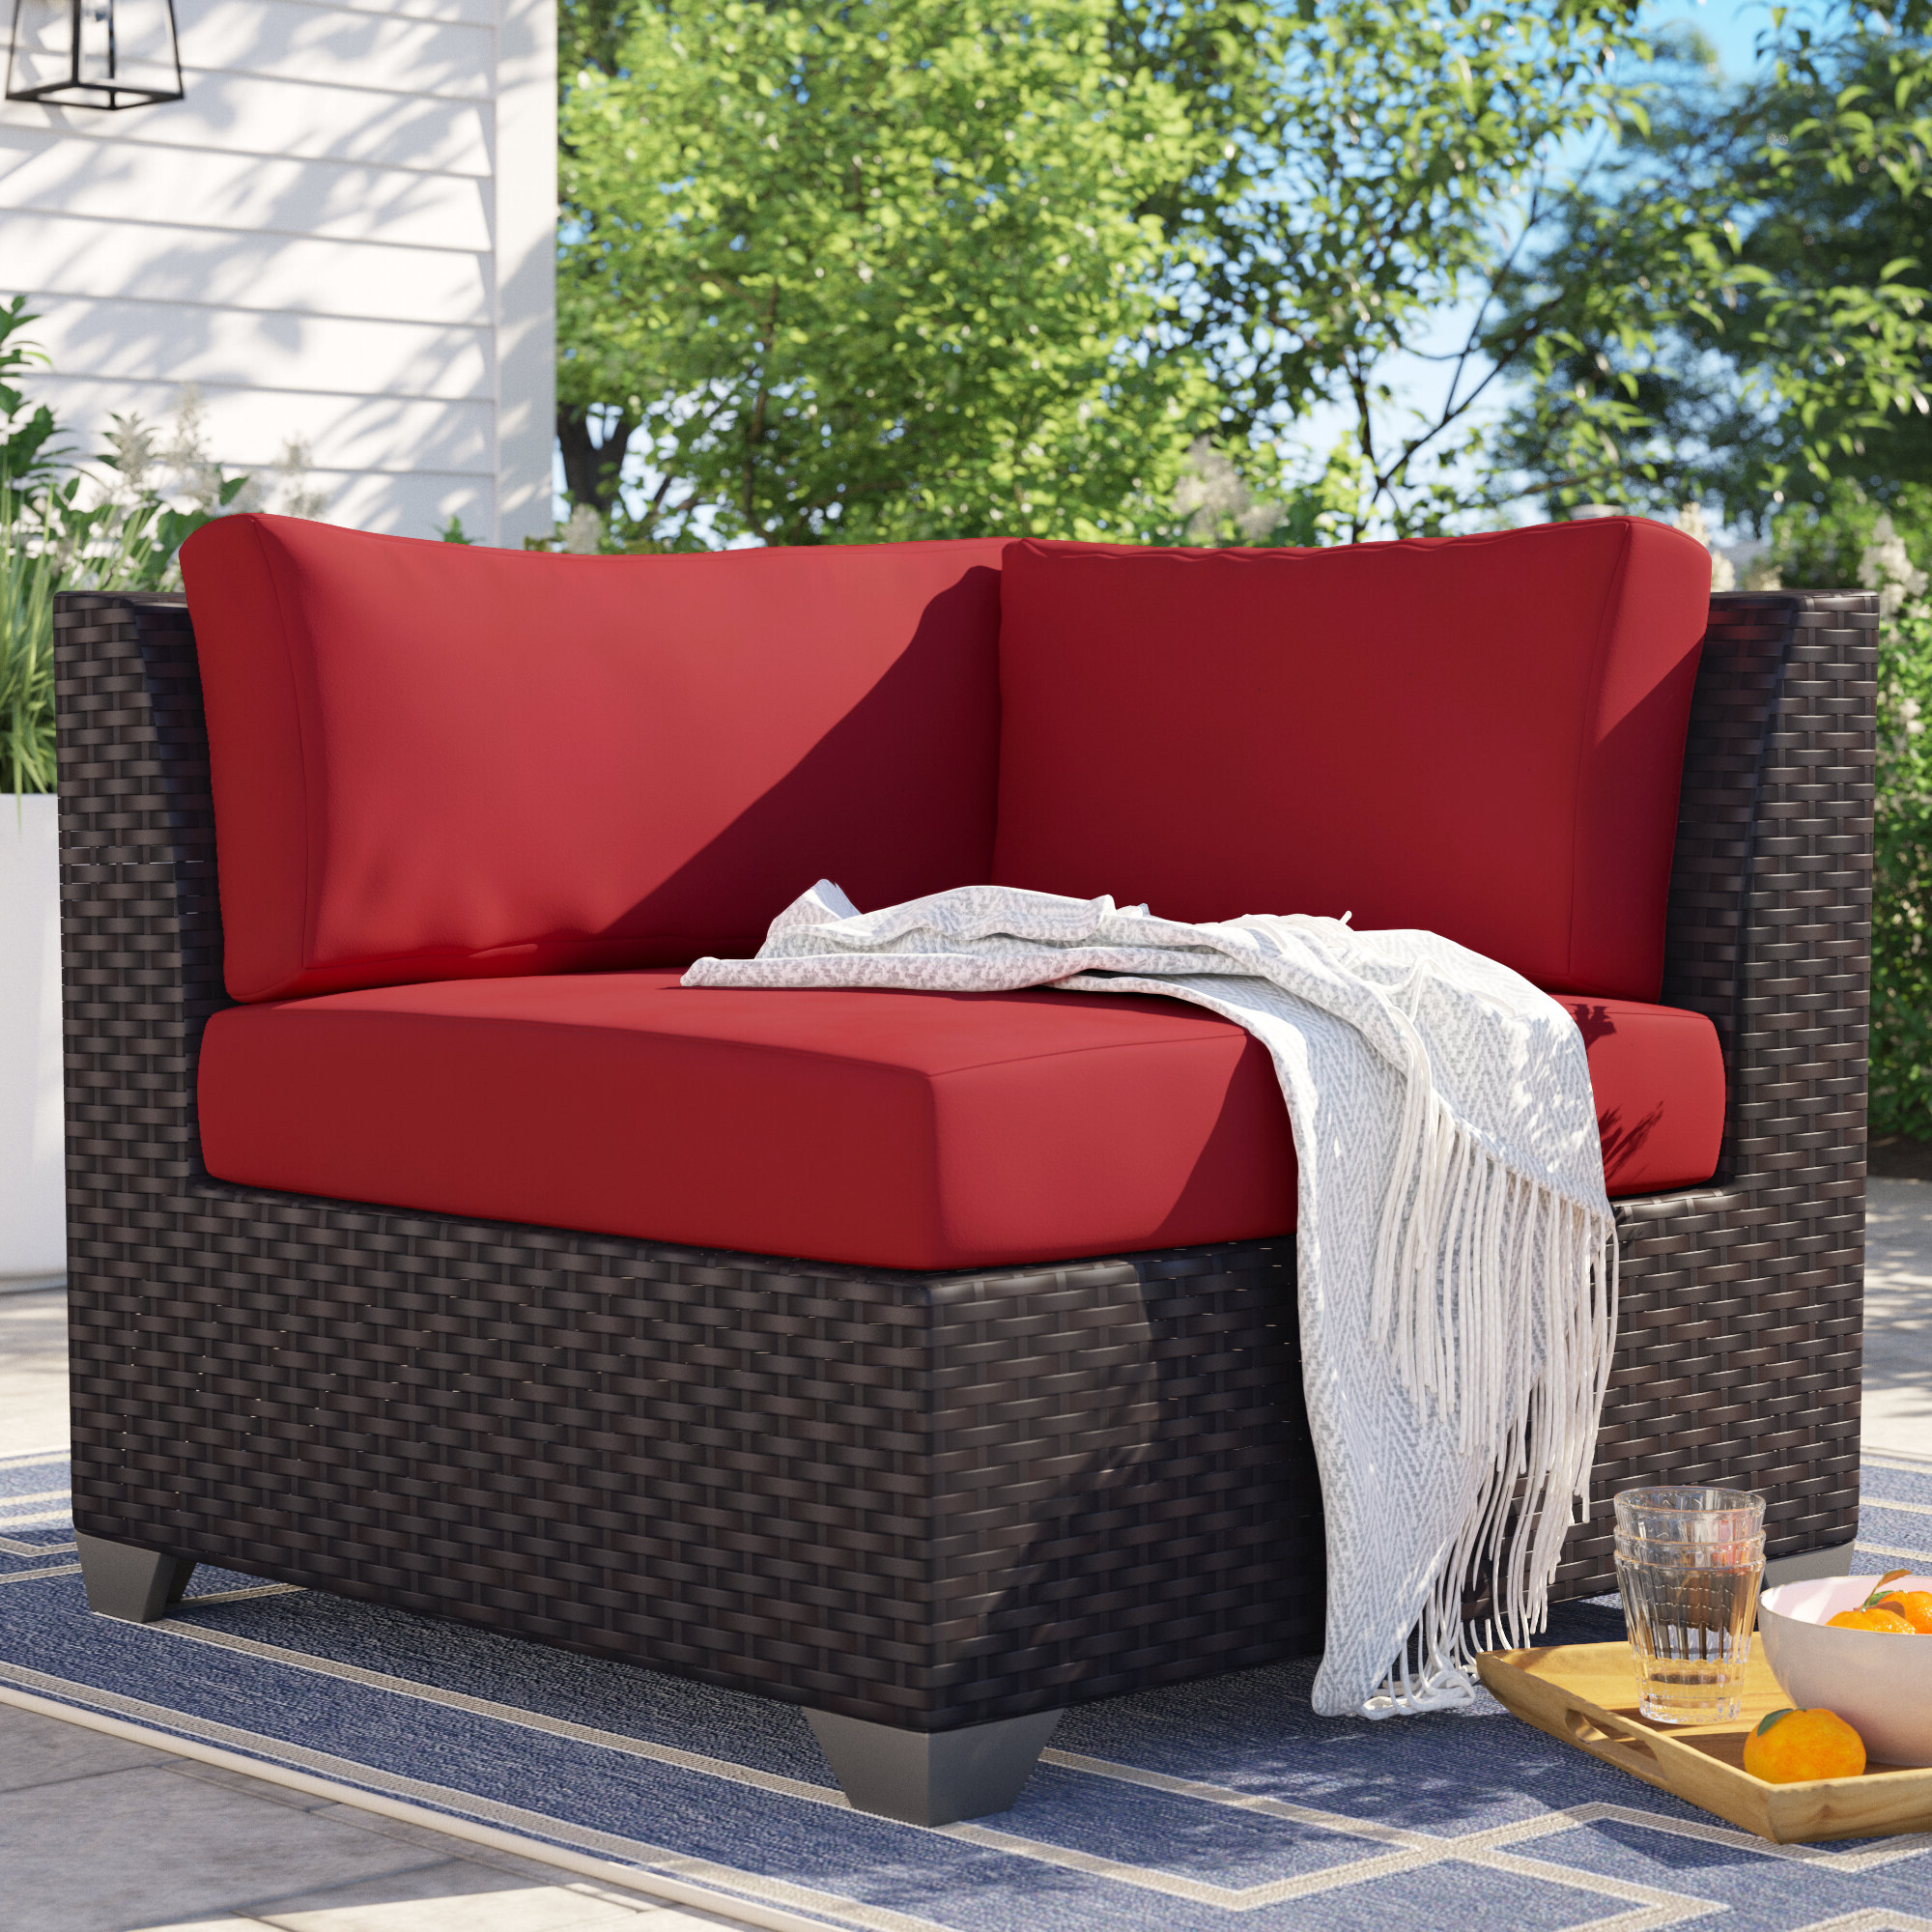 Tegan Patio Sofas With Cushions With Latest Tegan Patio Chair With Cushions (View 6 of 25)